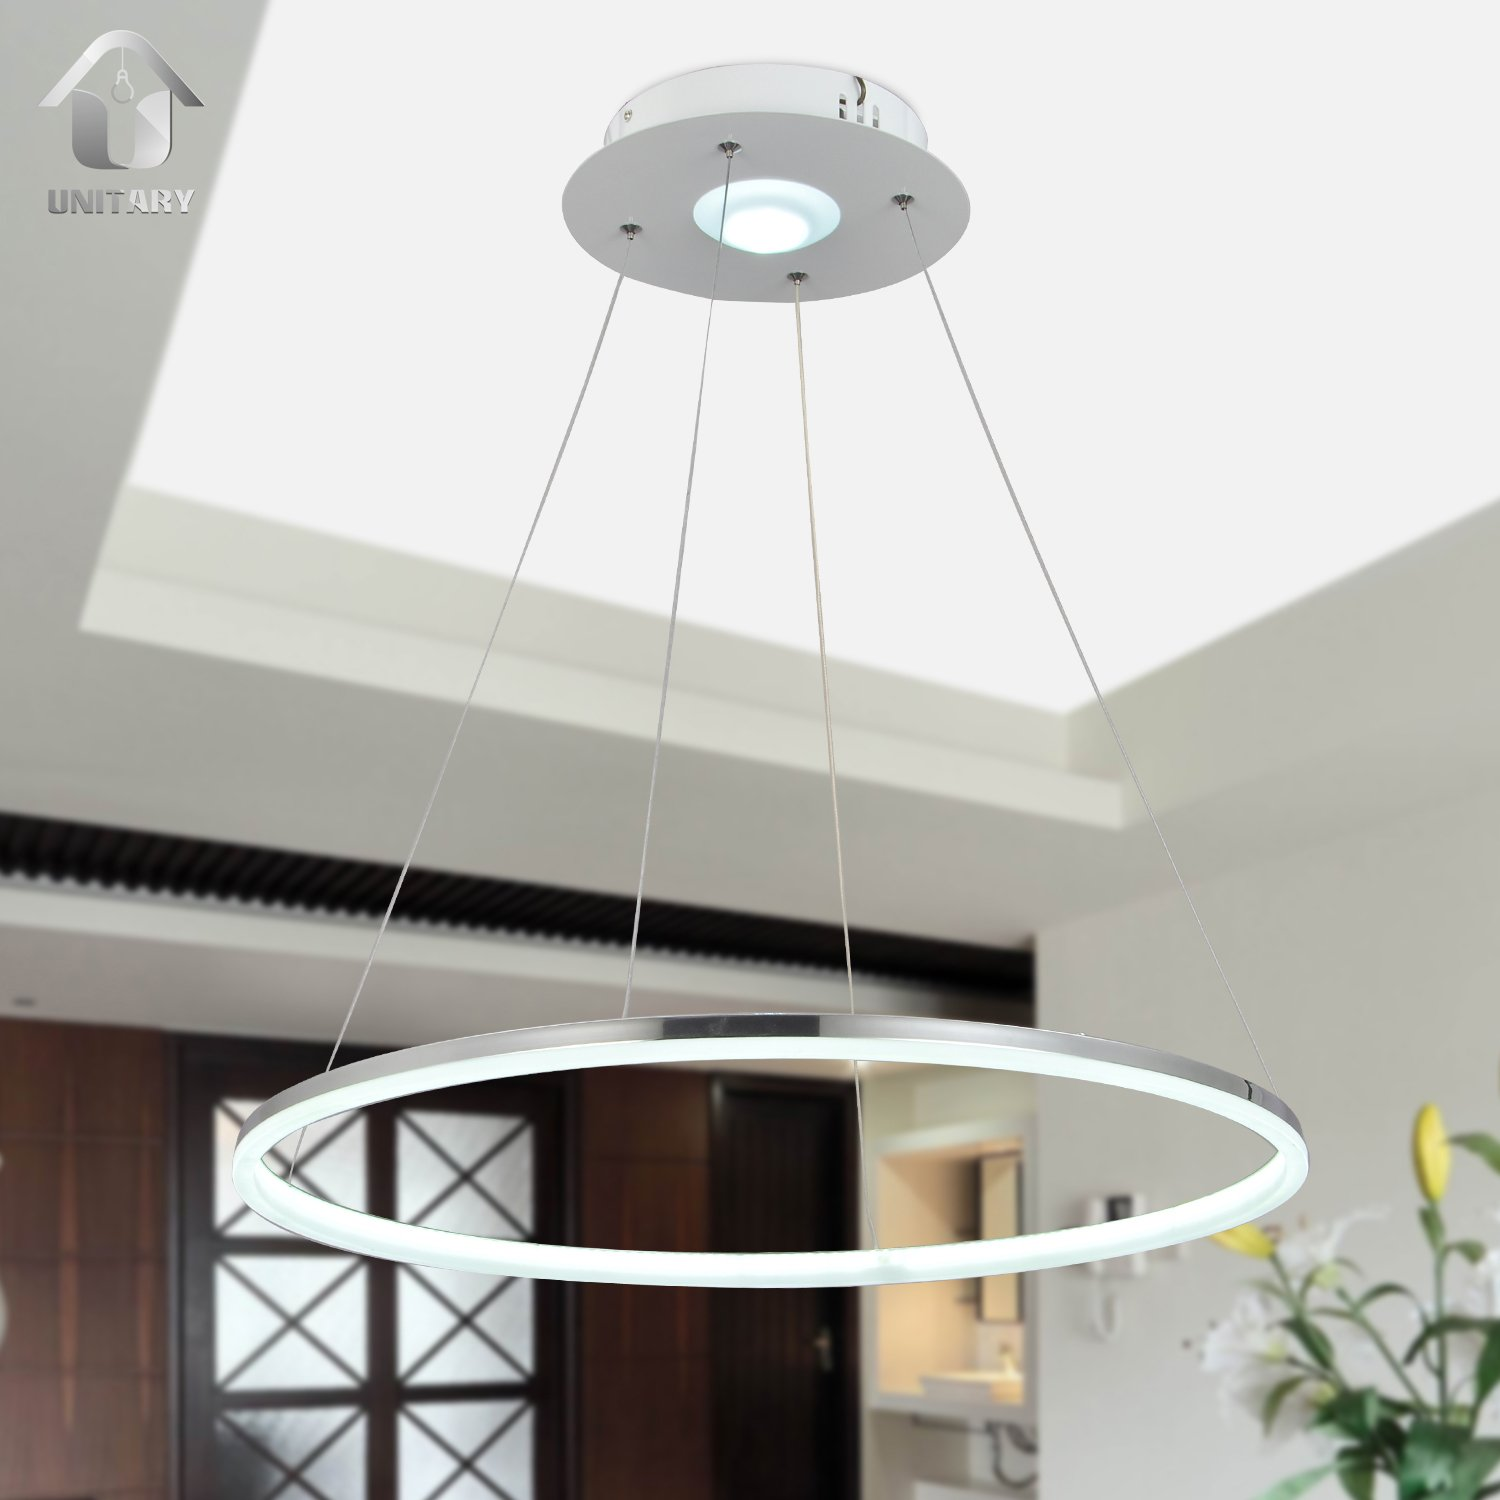 UNITARY BRAND Modern Nature White LED Acrylic Pendant Light Remote Control Included With 1 Ring Max 35W Chrome Finish 24 inches Diameter